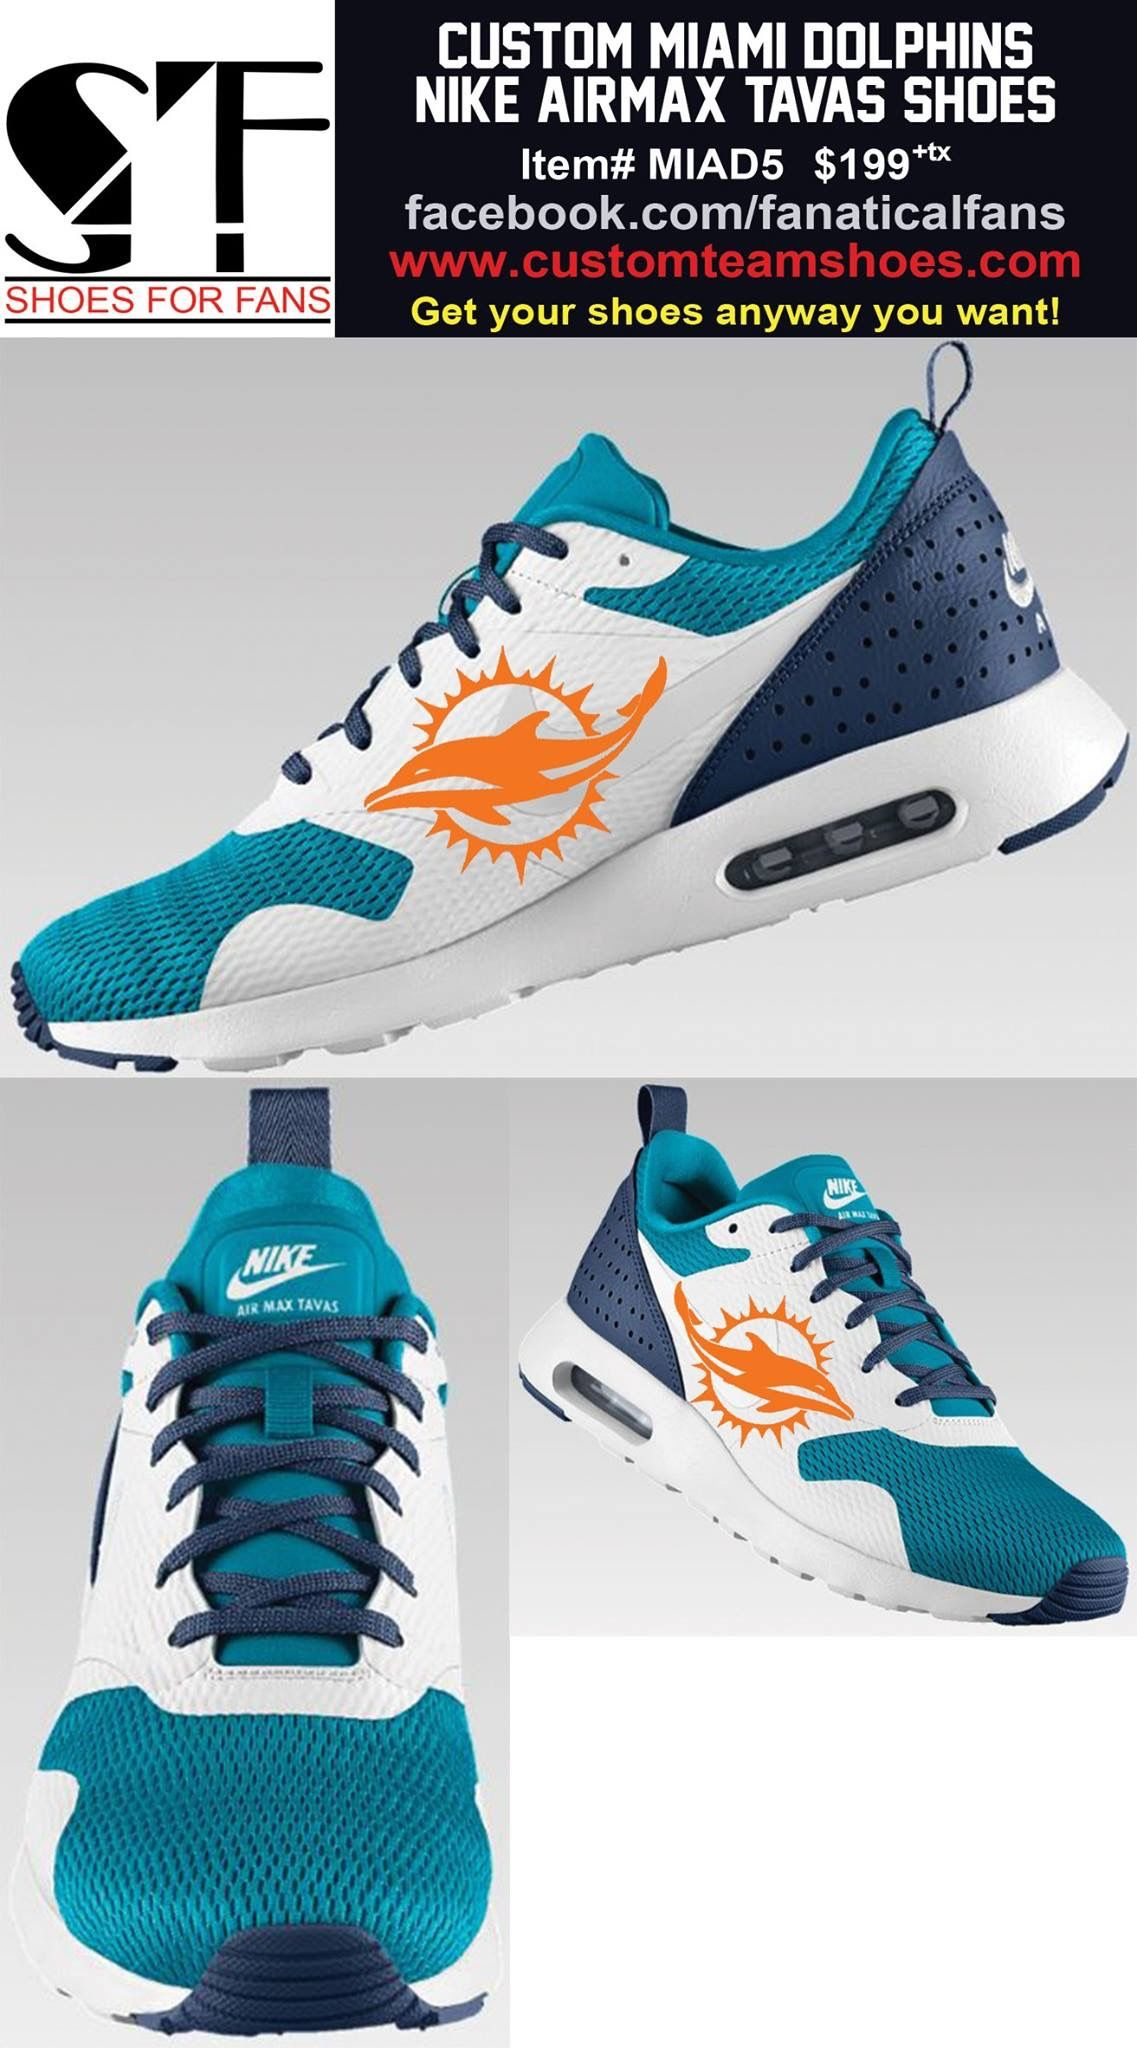 custom miami dolphins shoes